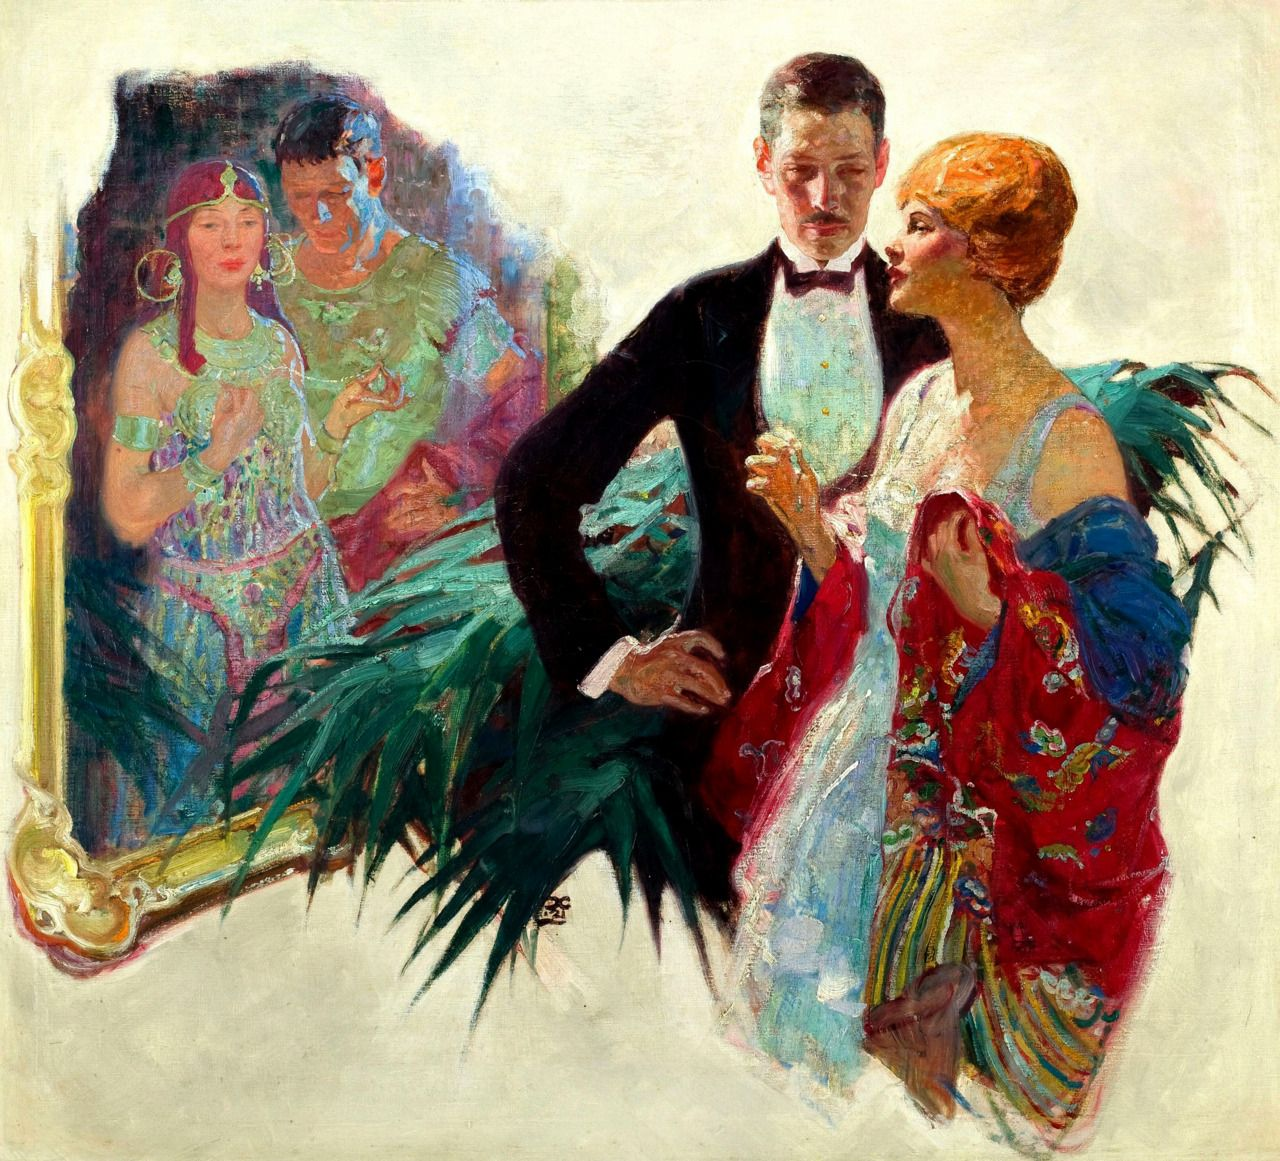 This Would Look Great In Our New Living Room Dean Cornwell Dean Cornwell Love Romance Vintage Retro Dean Cornwell Art Illustration Art